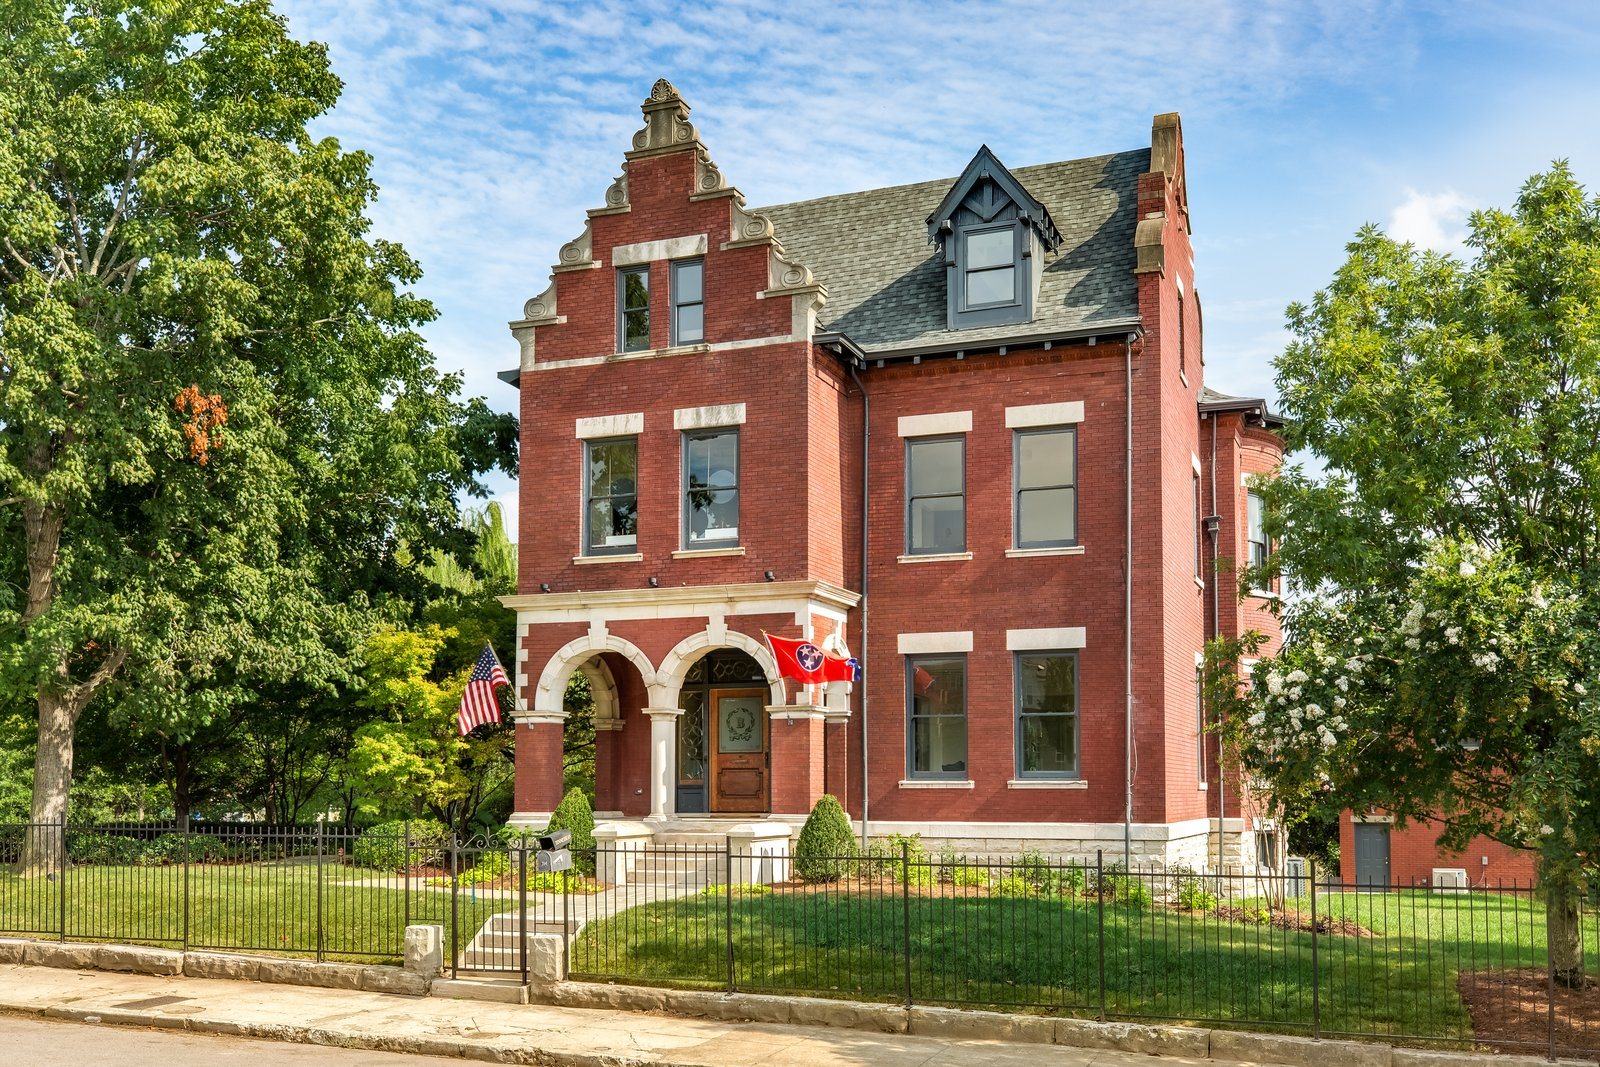 Photo 1 of 14 in Modern Interiors Shine Behind the 19th-Century Facade of This Nashville Home, Now Asking $2.1M